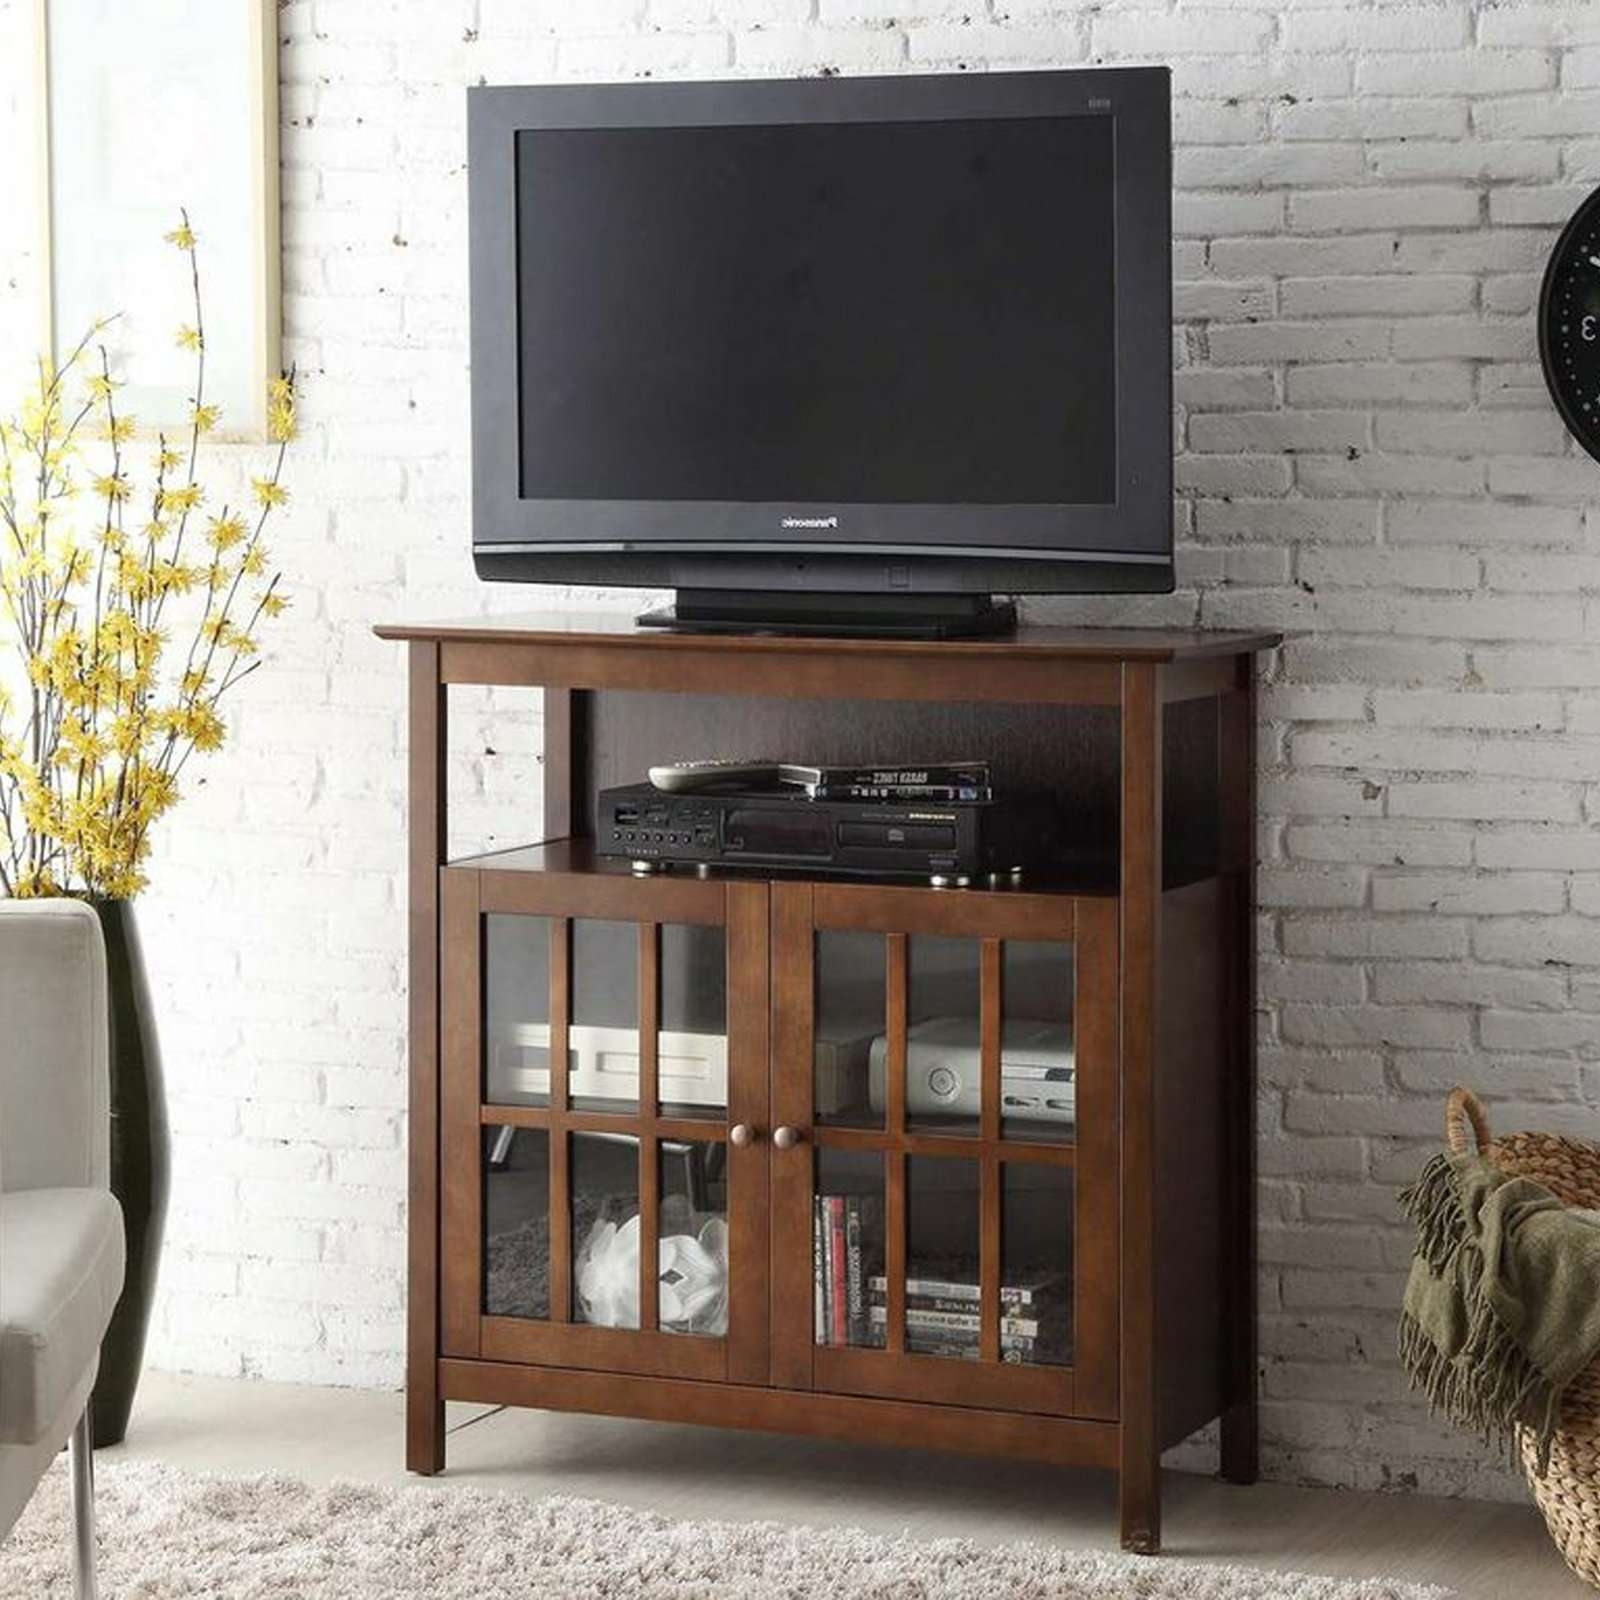 Considerable Tv Also News Archive Similiar Inch Sony Wega Tv Within Corner Tv Stands 40 Inch (View 1 of 20)